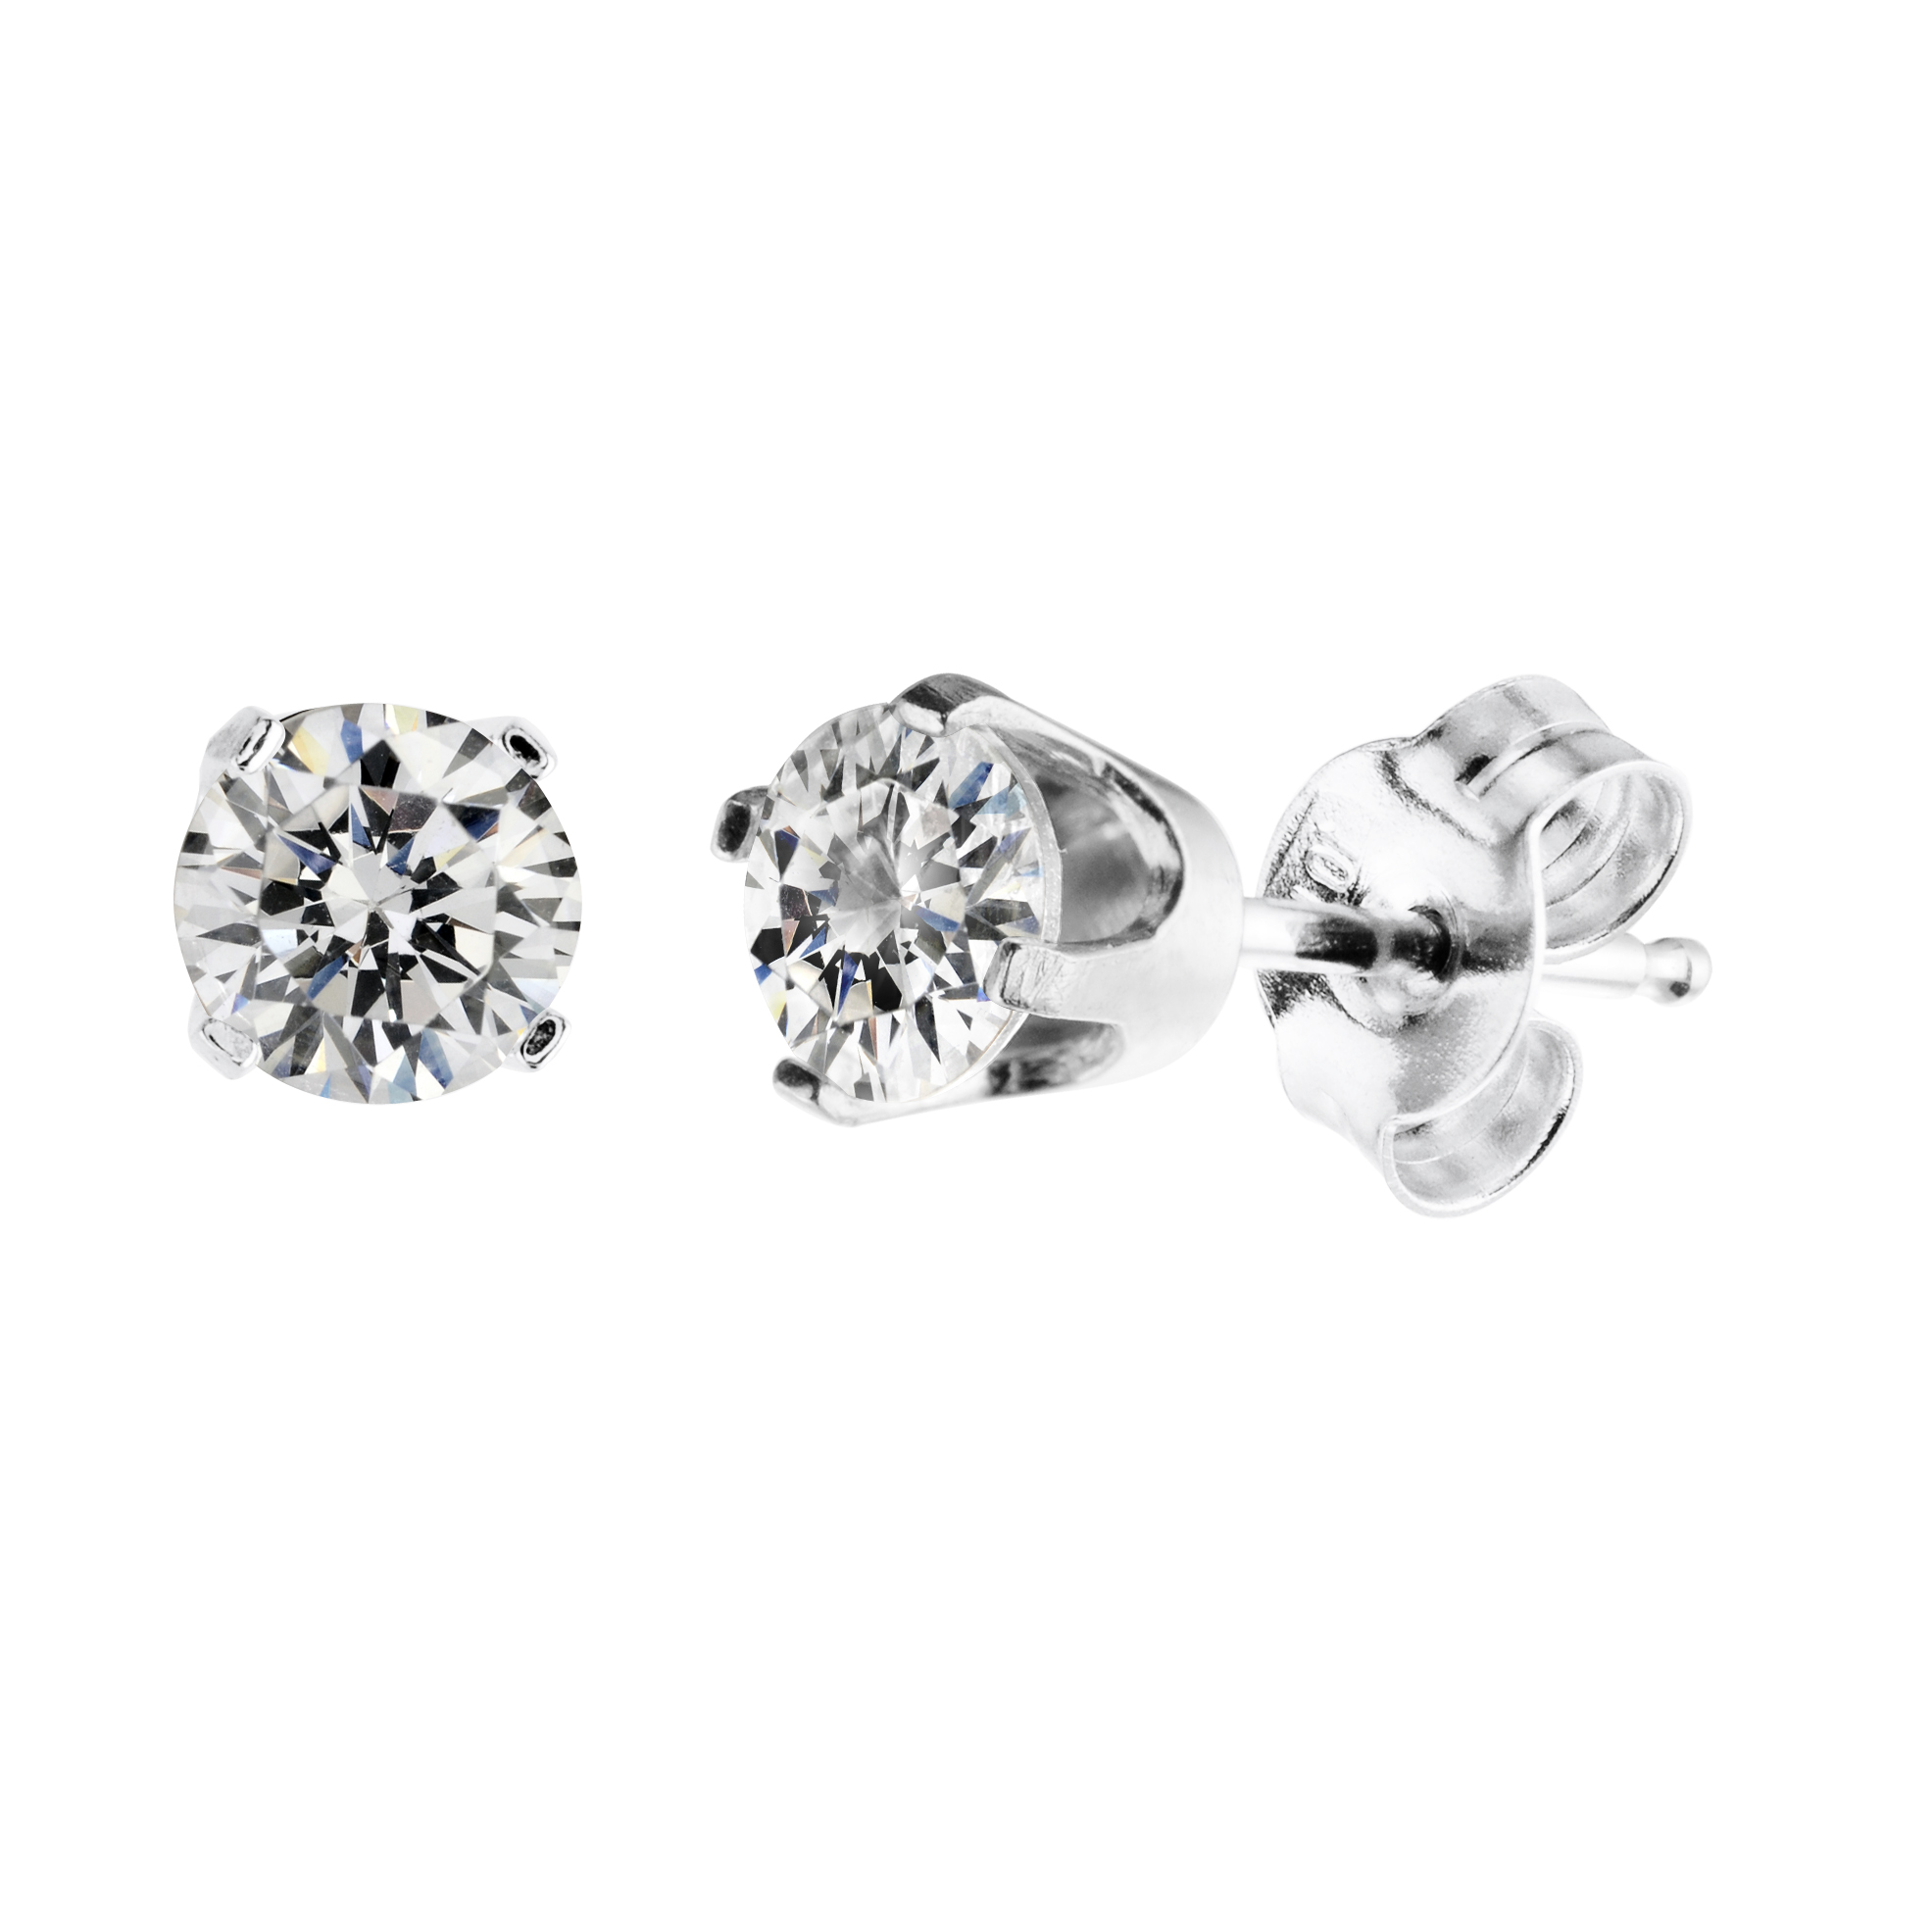 Stud Earrings with cubic zirconia of 50pts. - in 14K White Gold